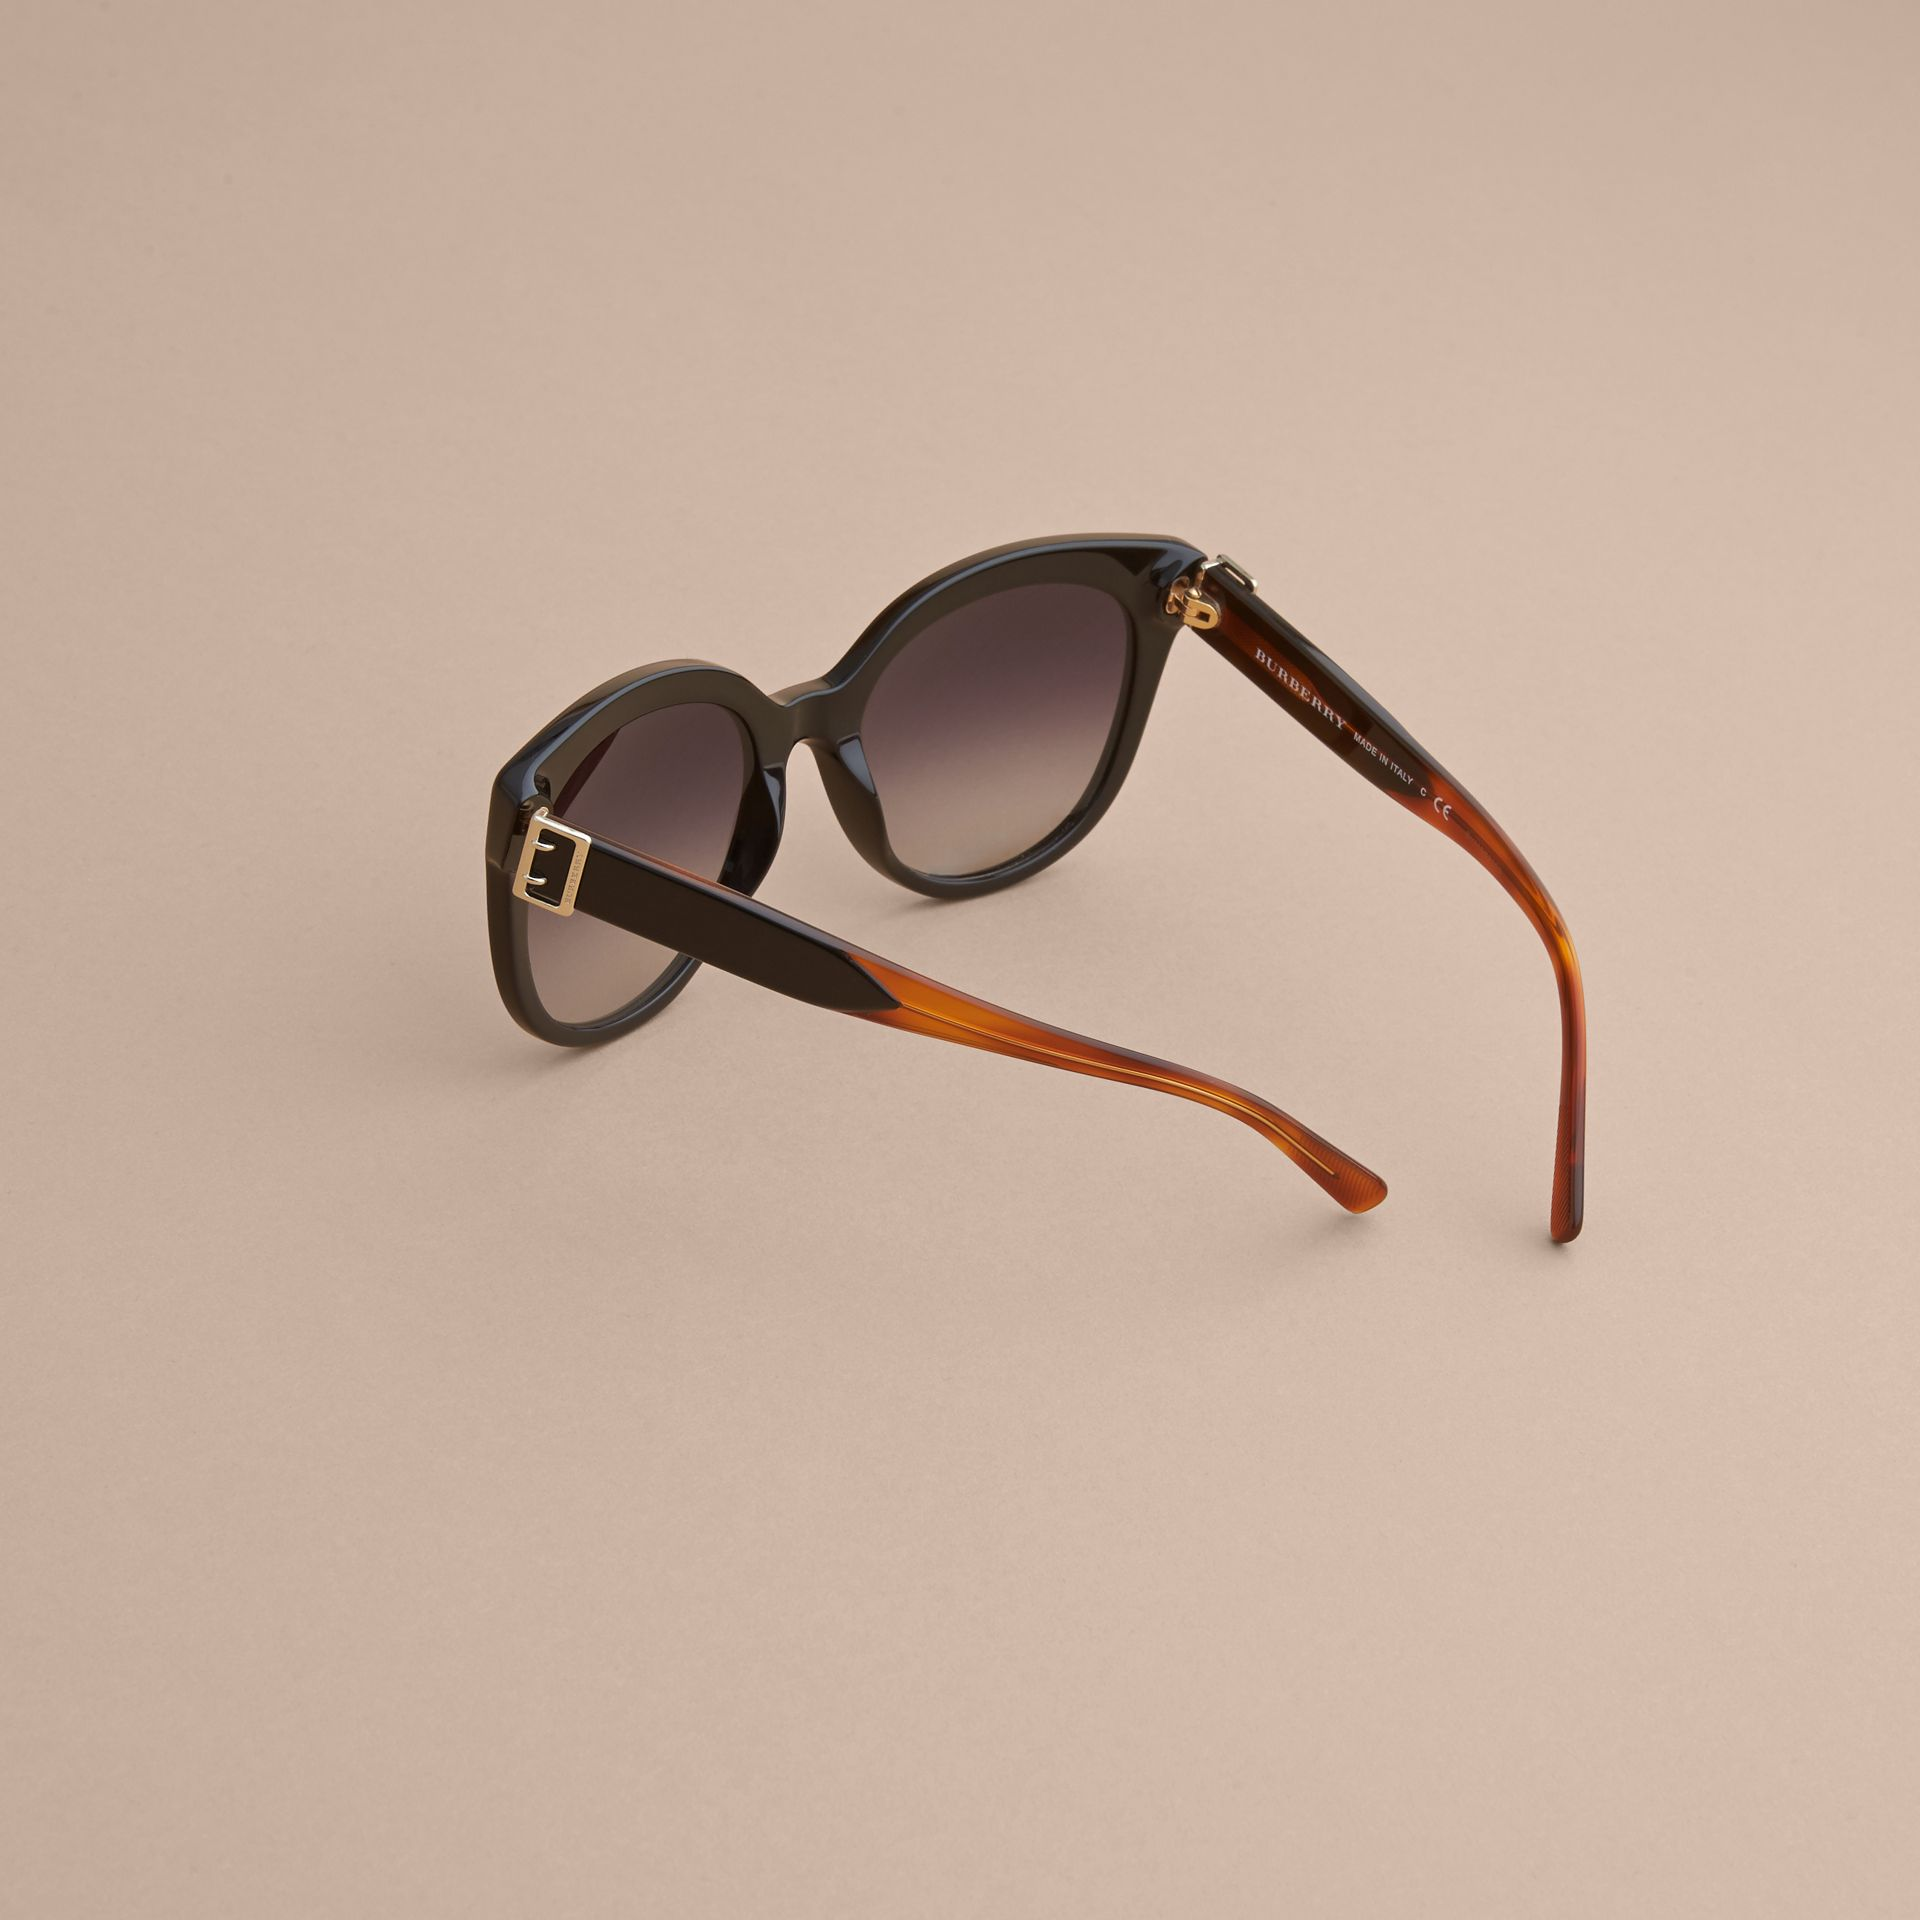 Buckle Detail Cat-eye Frame Sunglasses in Black - Women | Burberry United Kingdom - gallery image 3